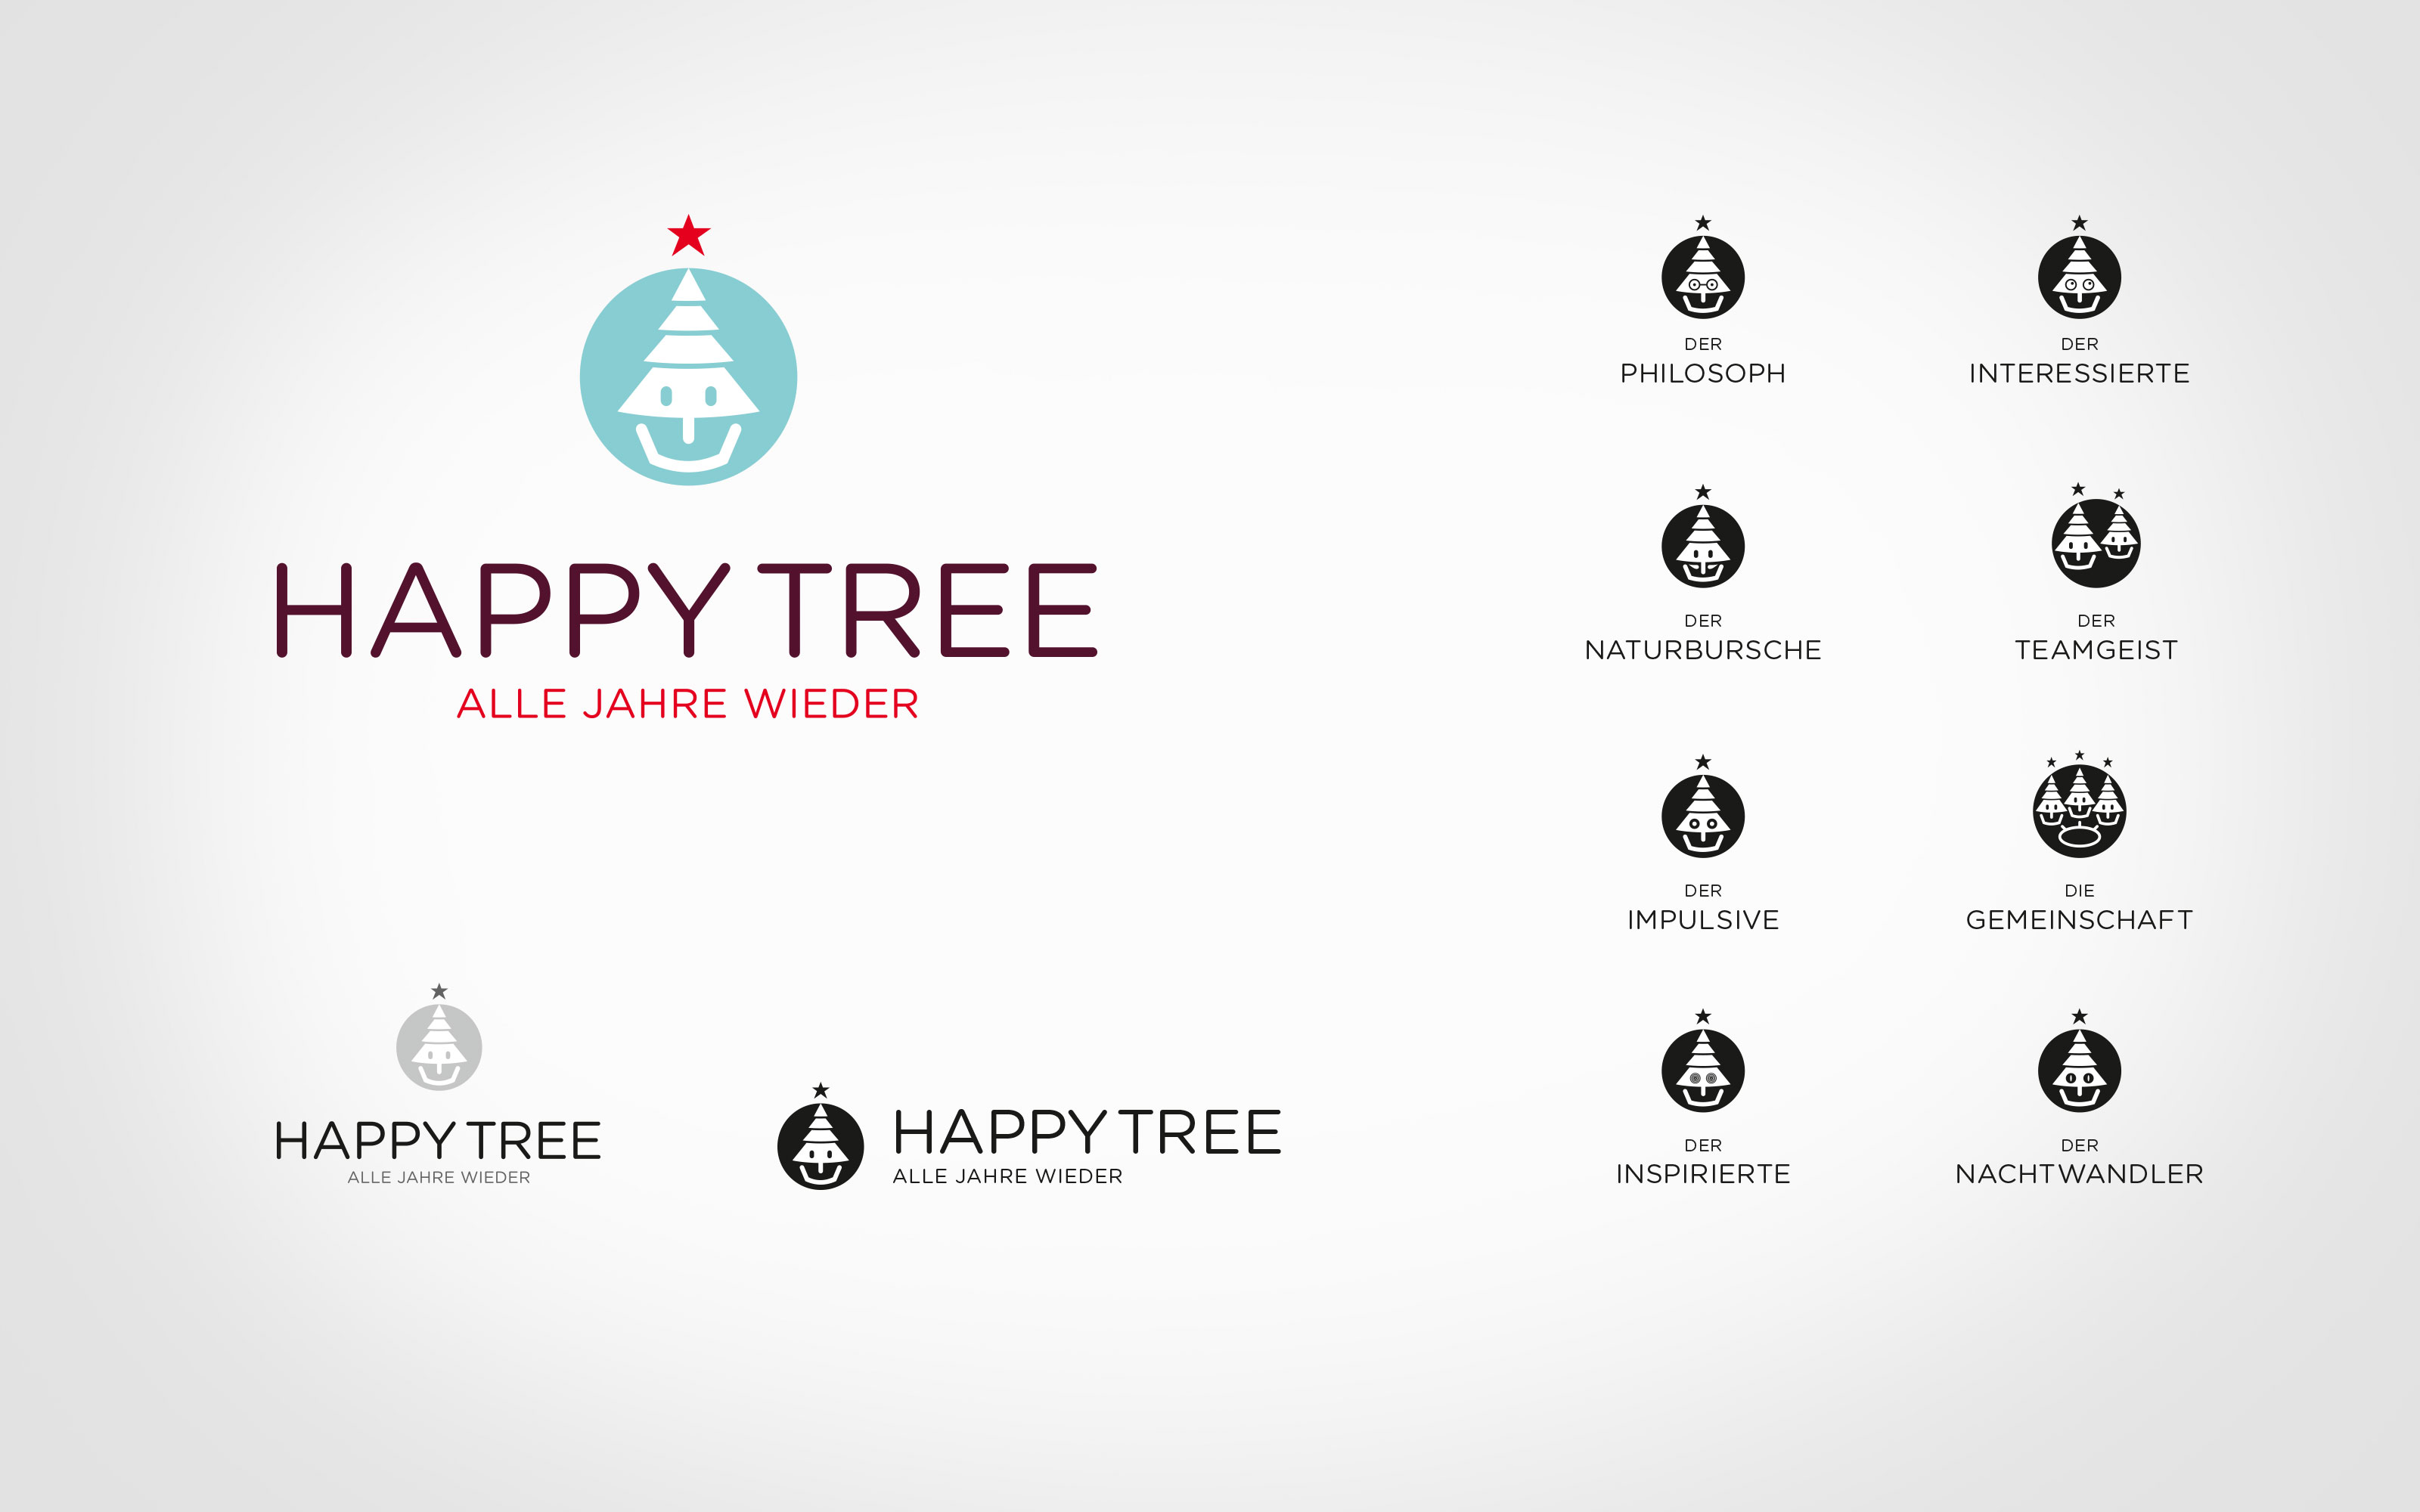 maniana-design happy-tree logos